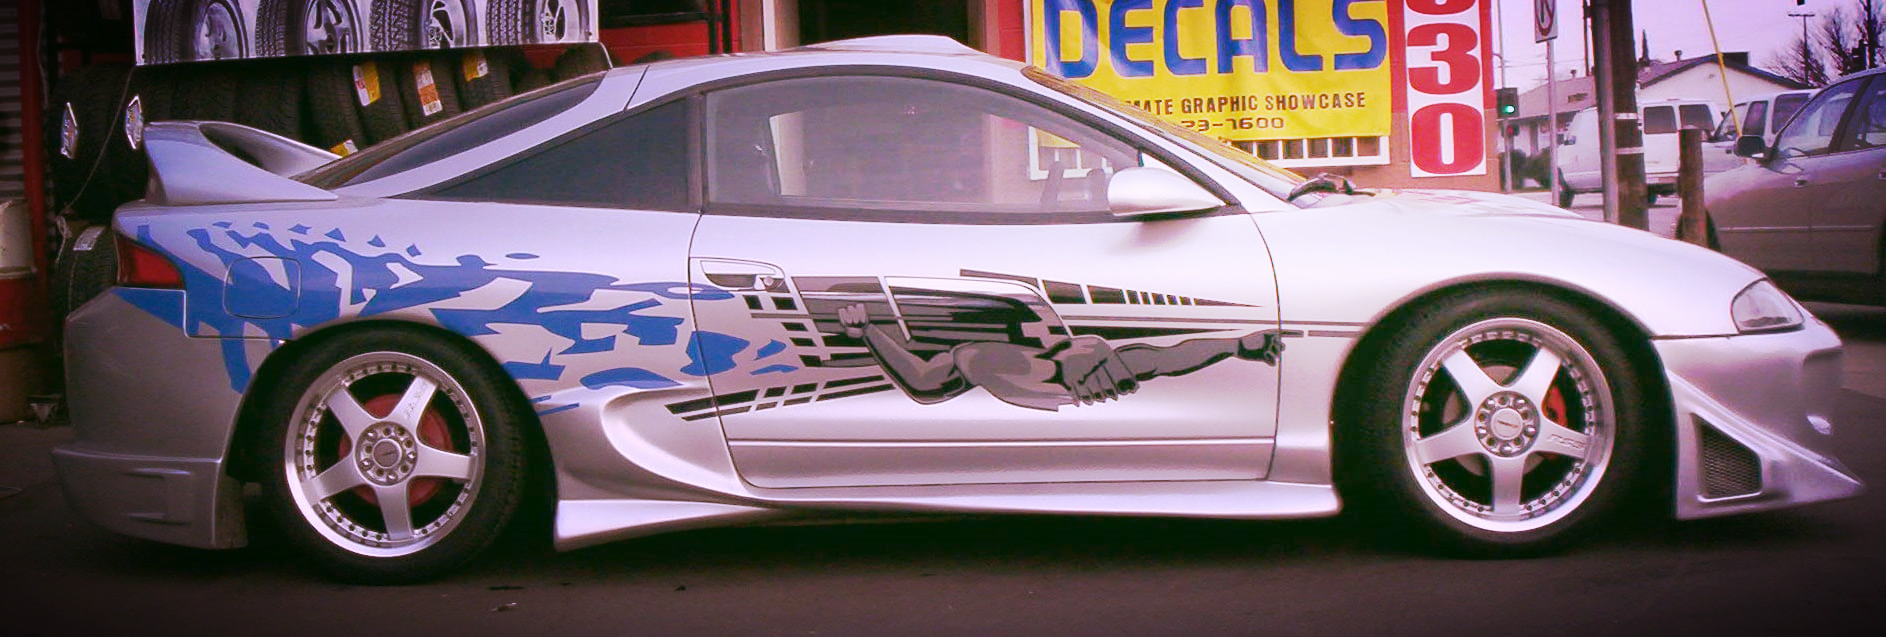 """When the movie """"Fast and the Furious"""" came out,we were the go to shop for vinyl graphics."""